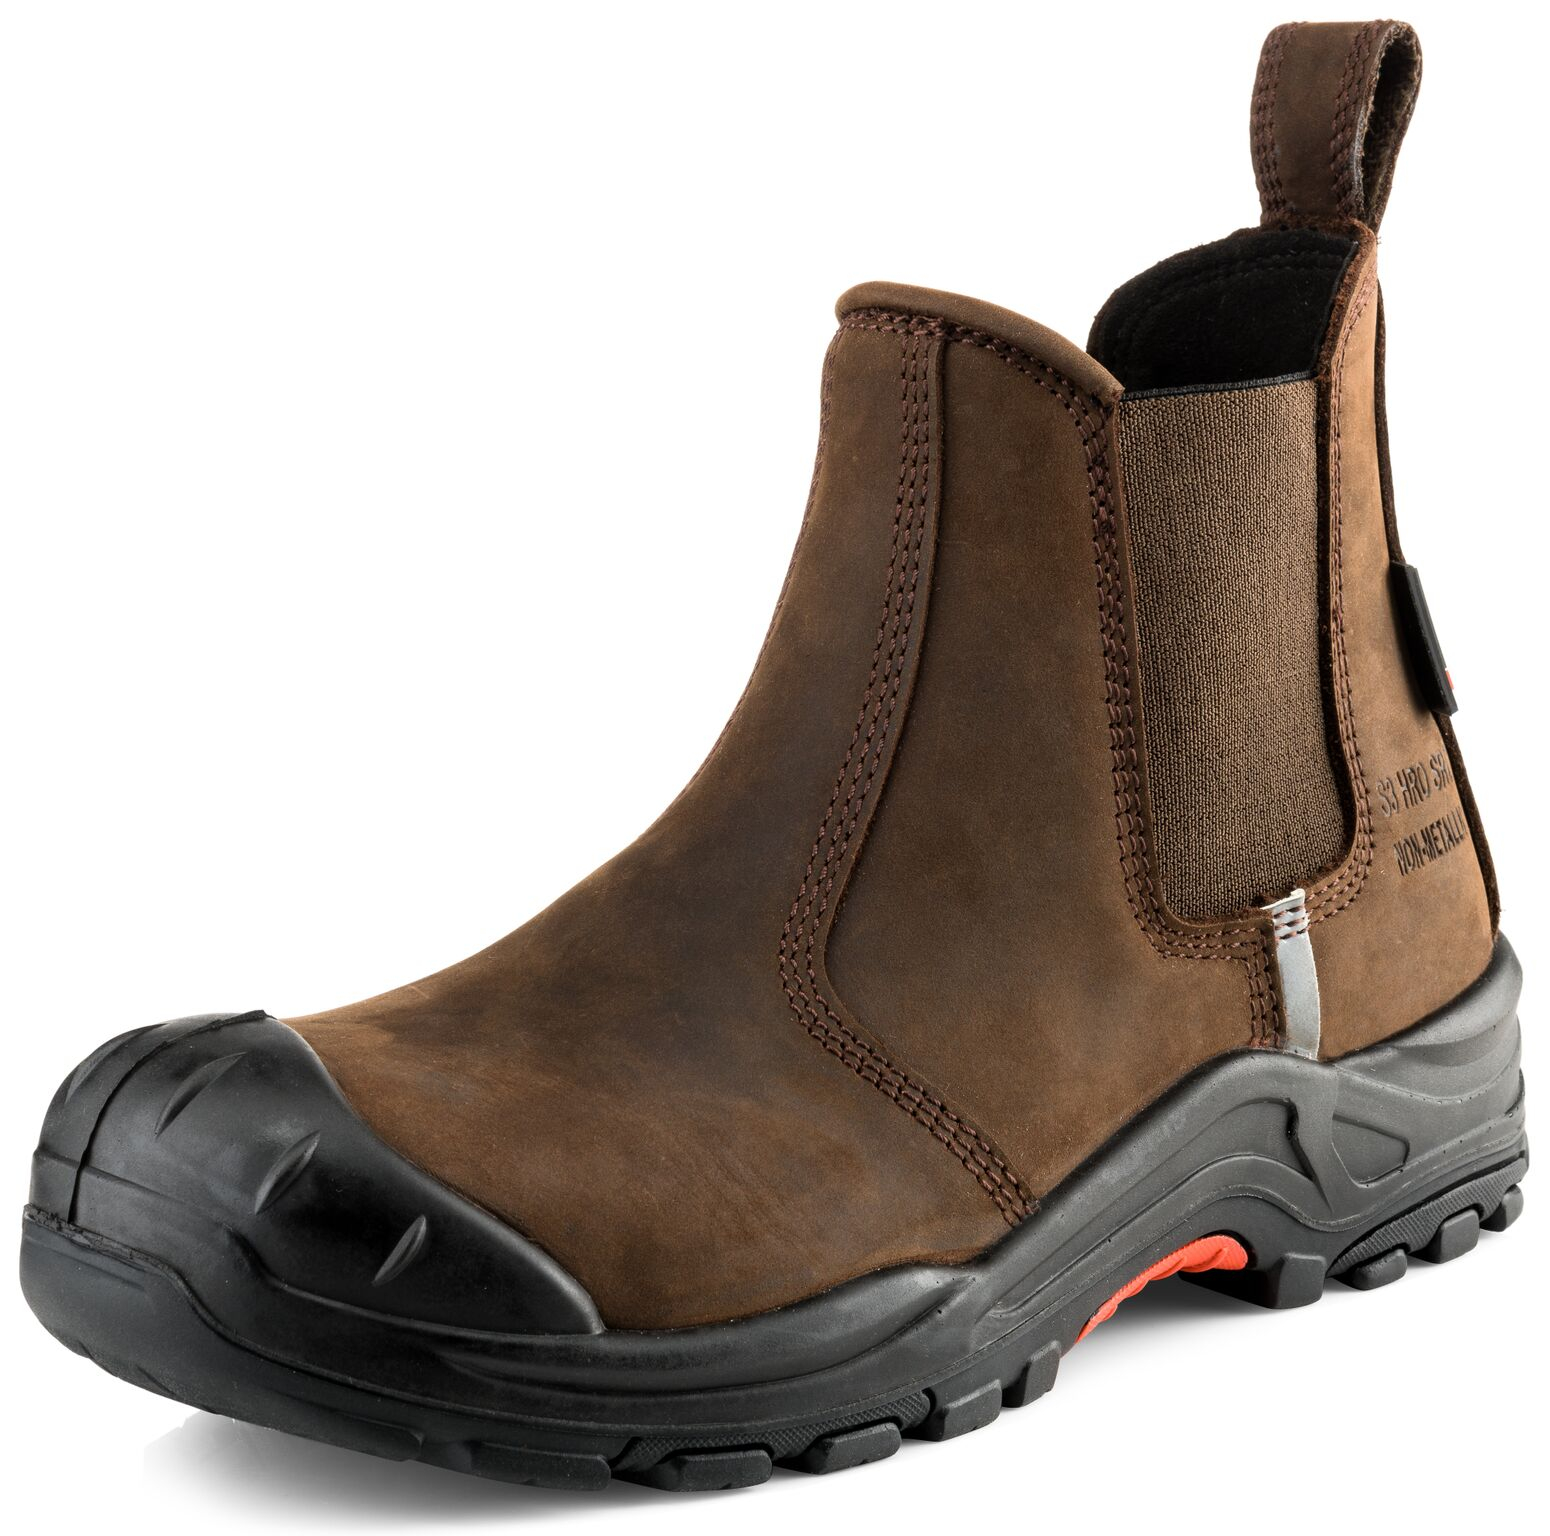 Nubuckz Safety Slip-on Dealer Boot Brown